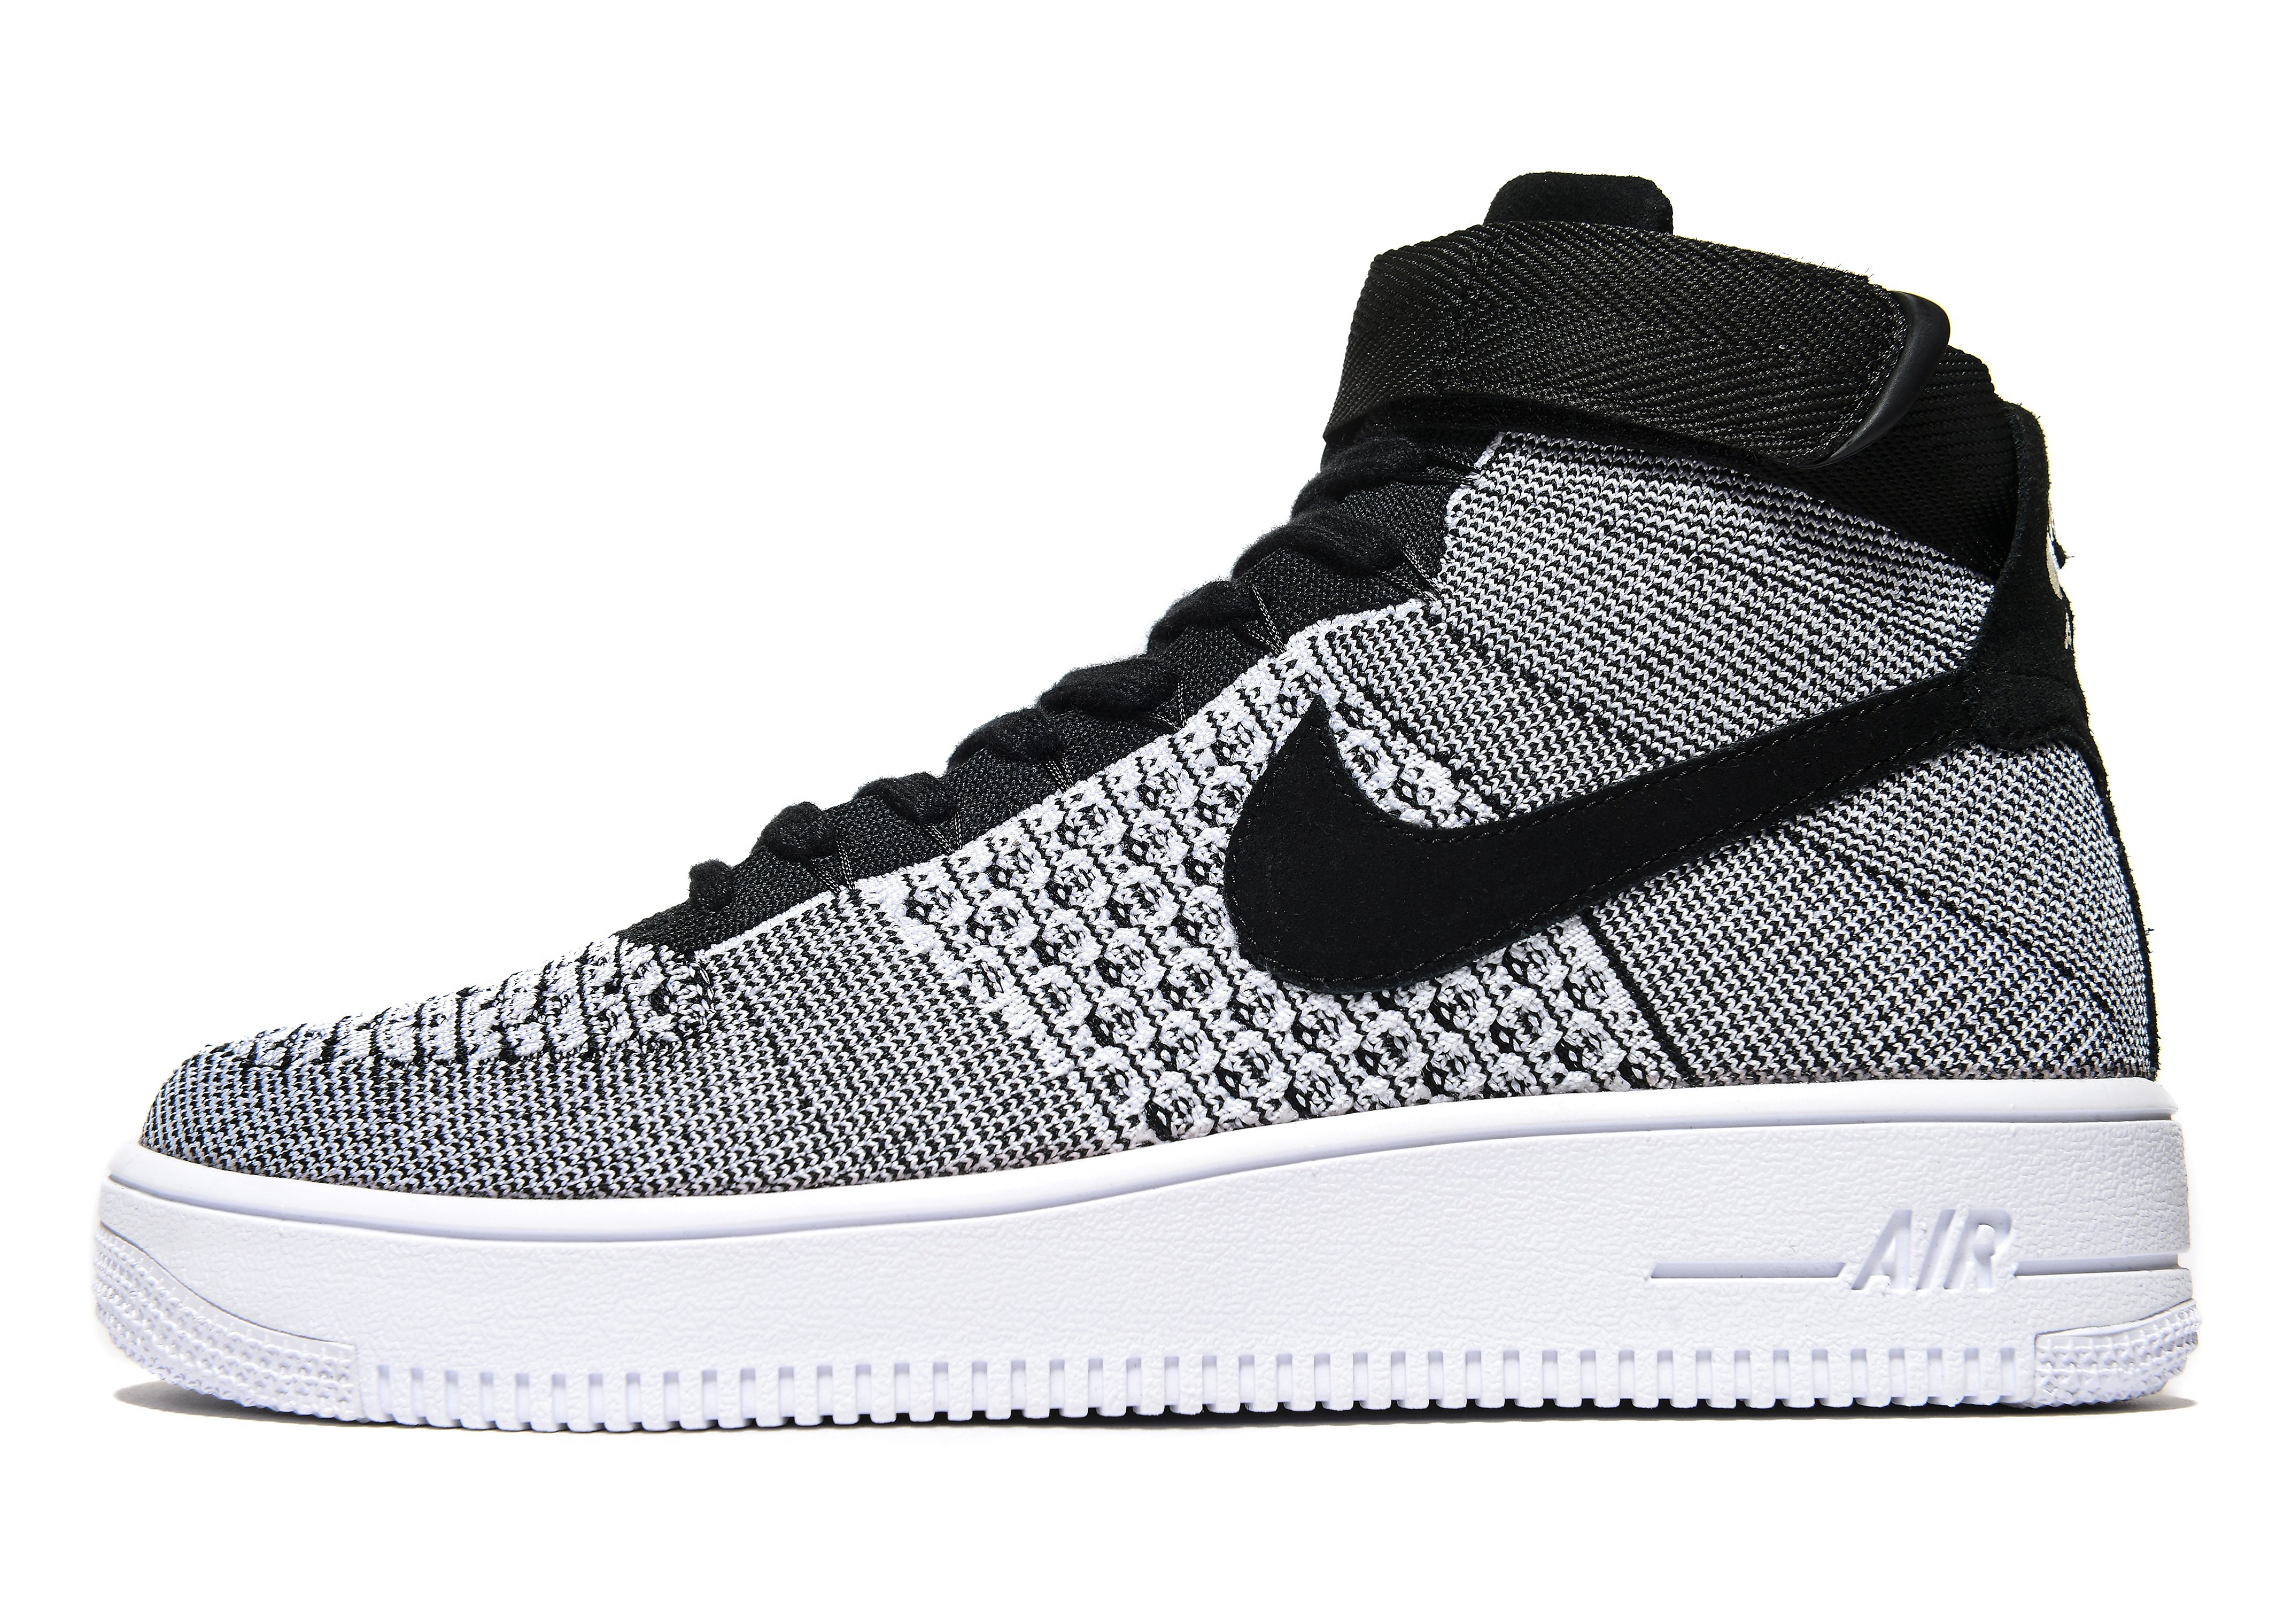 Nike Air Force1 Mid Ultra Flyknit